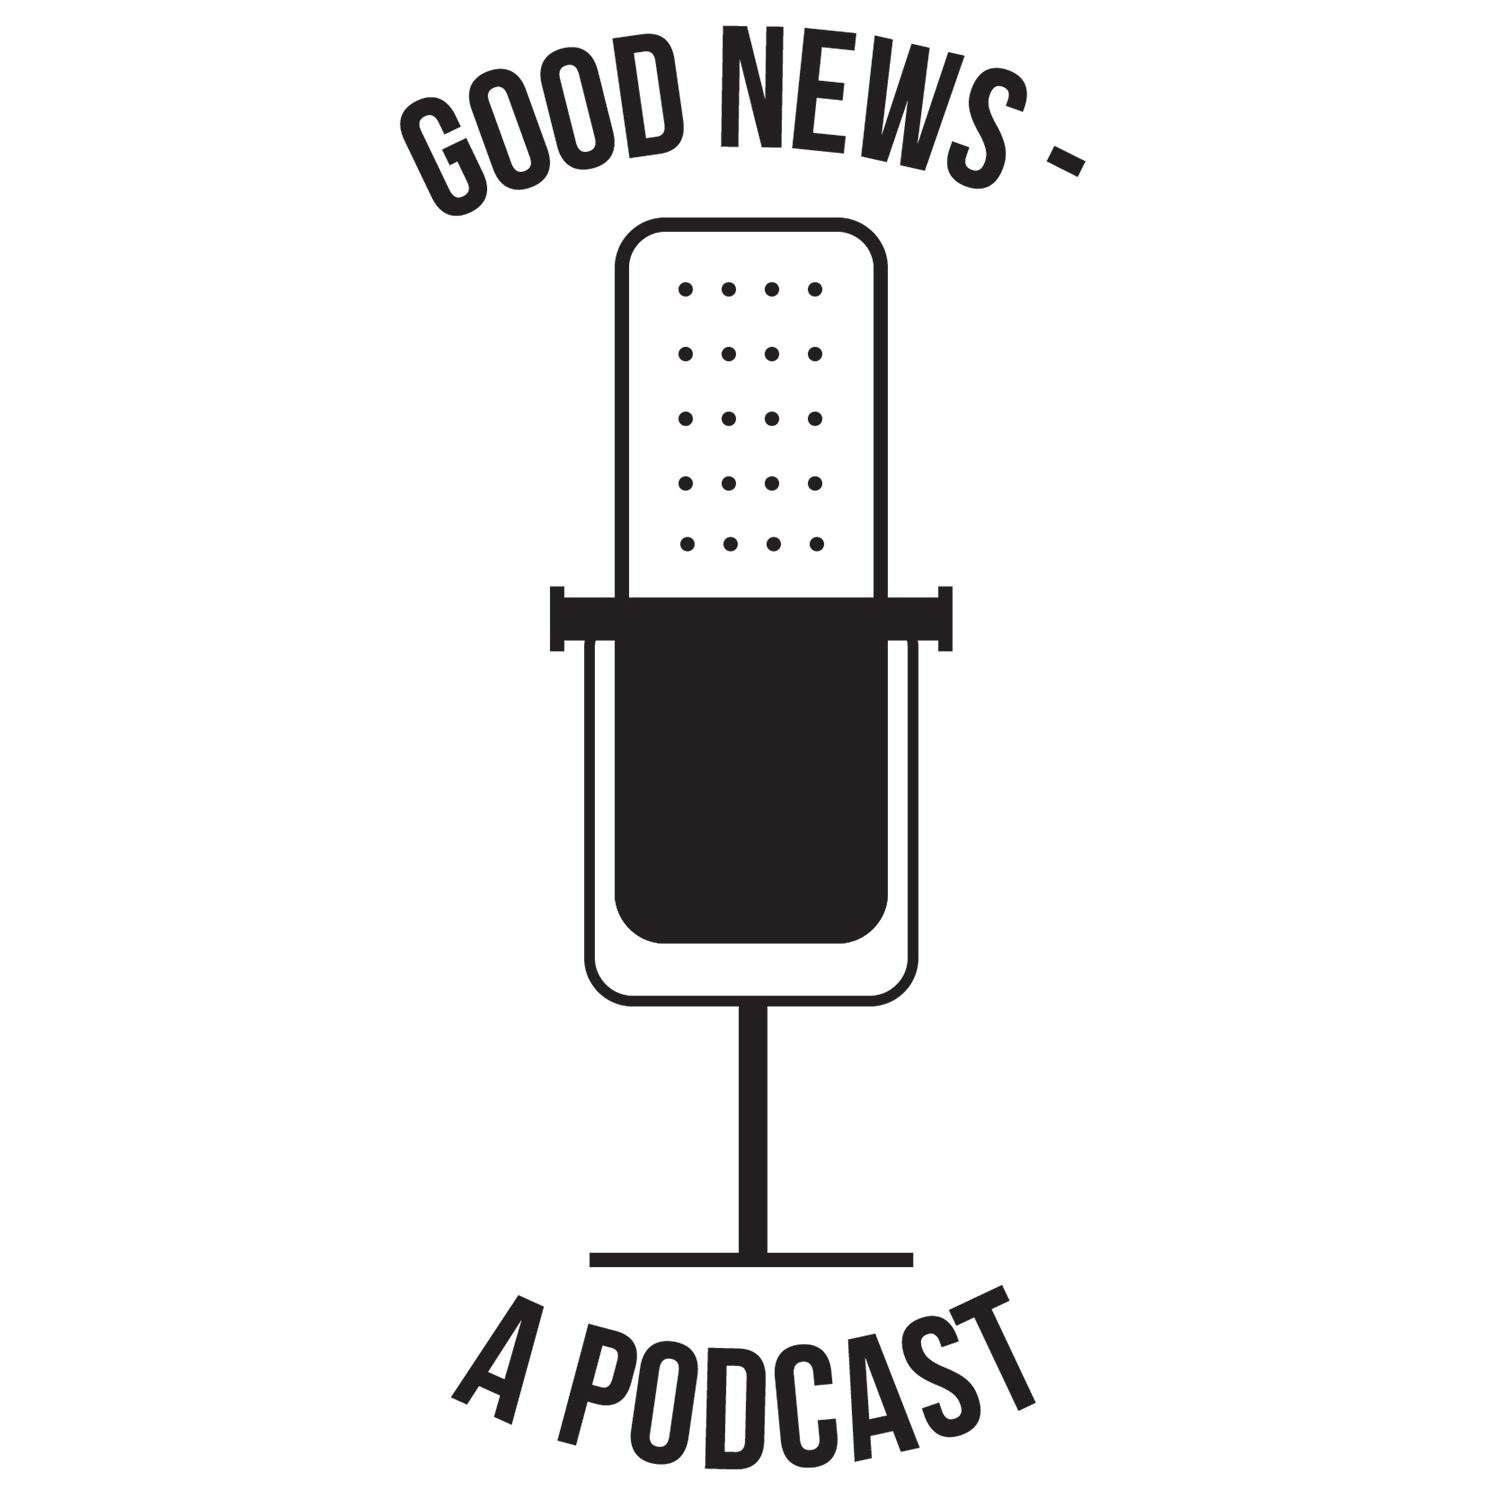 classic-logo-square-good.news-a.podcast.png